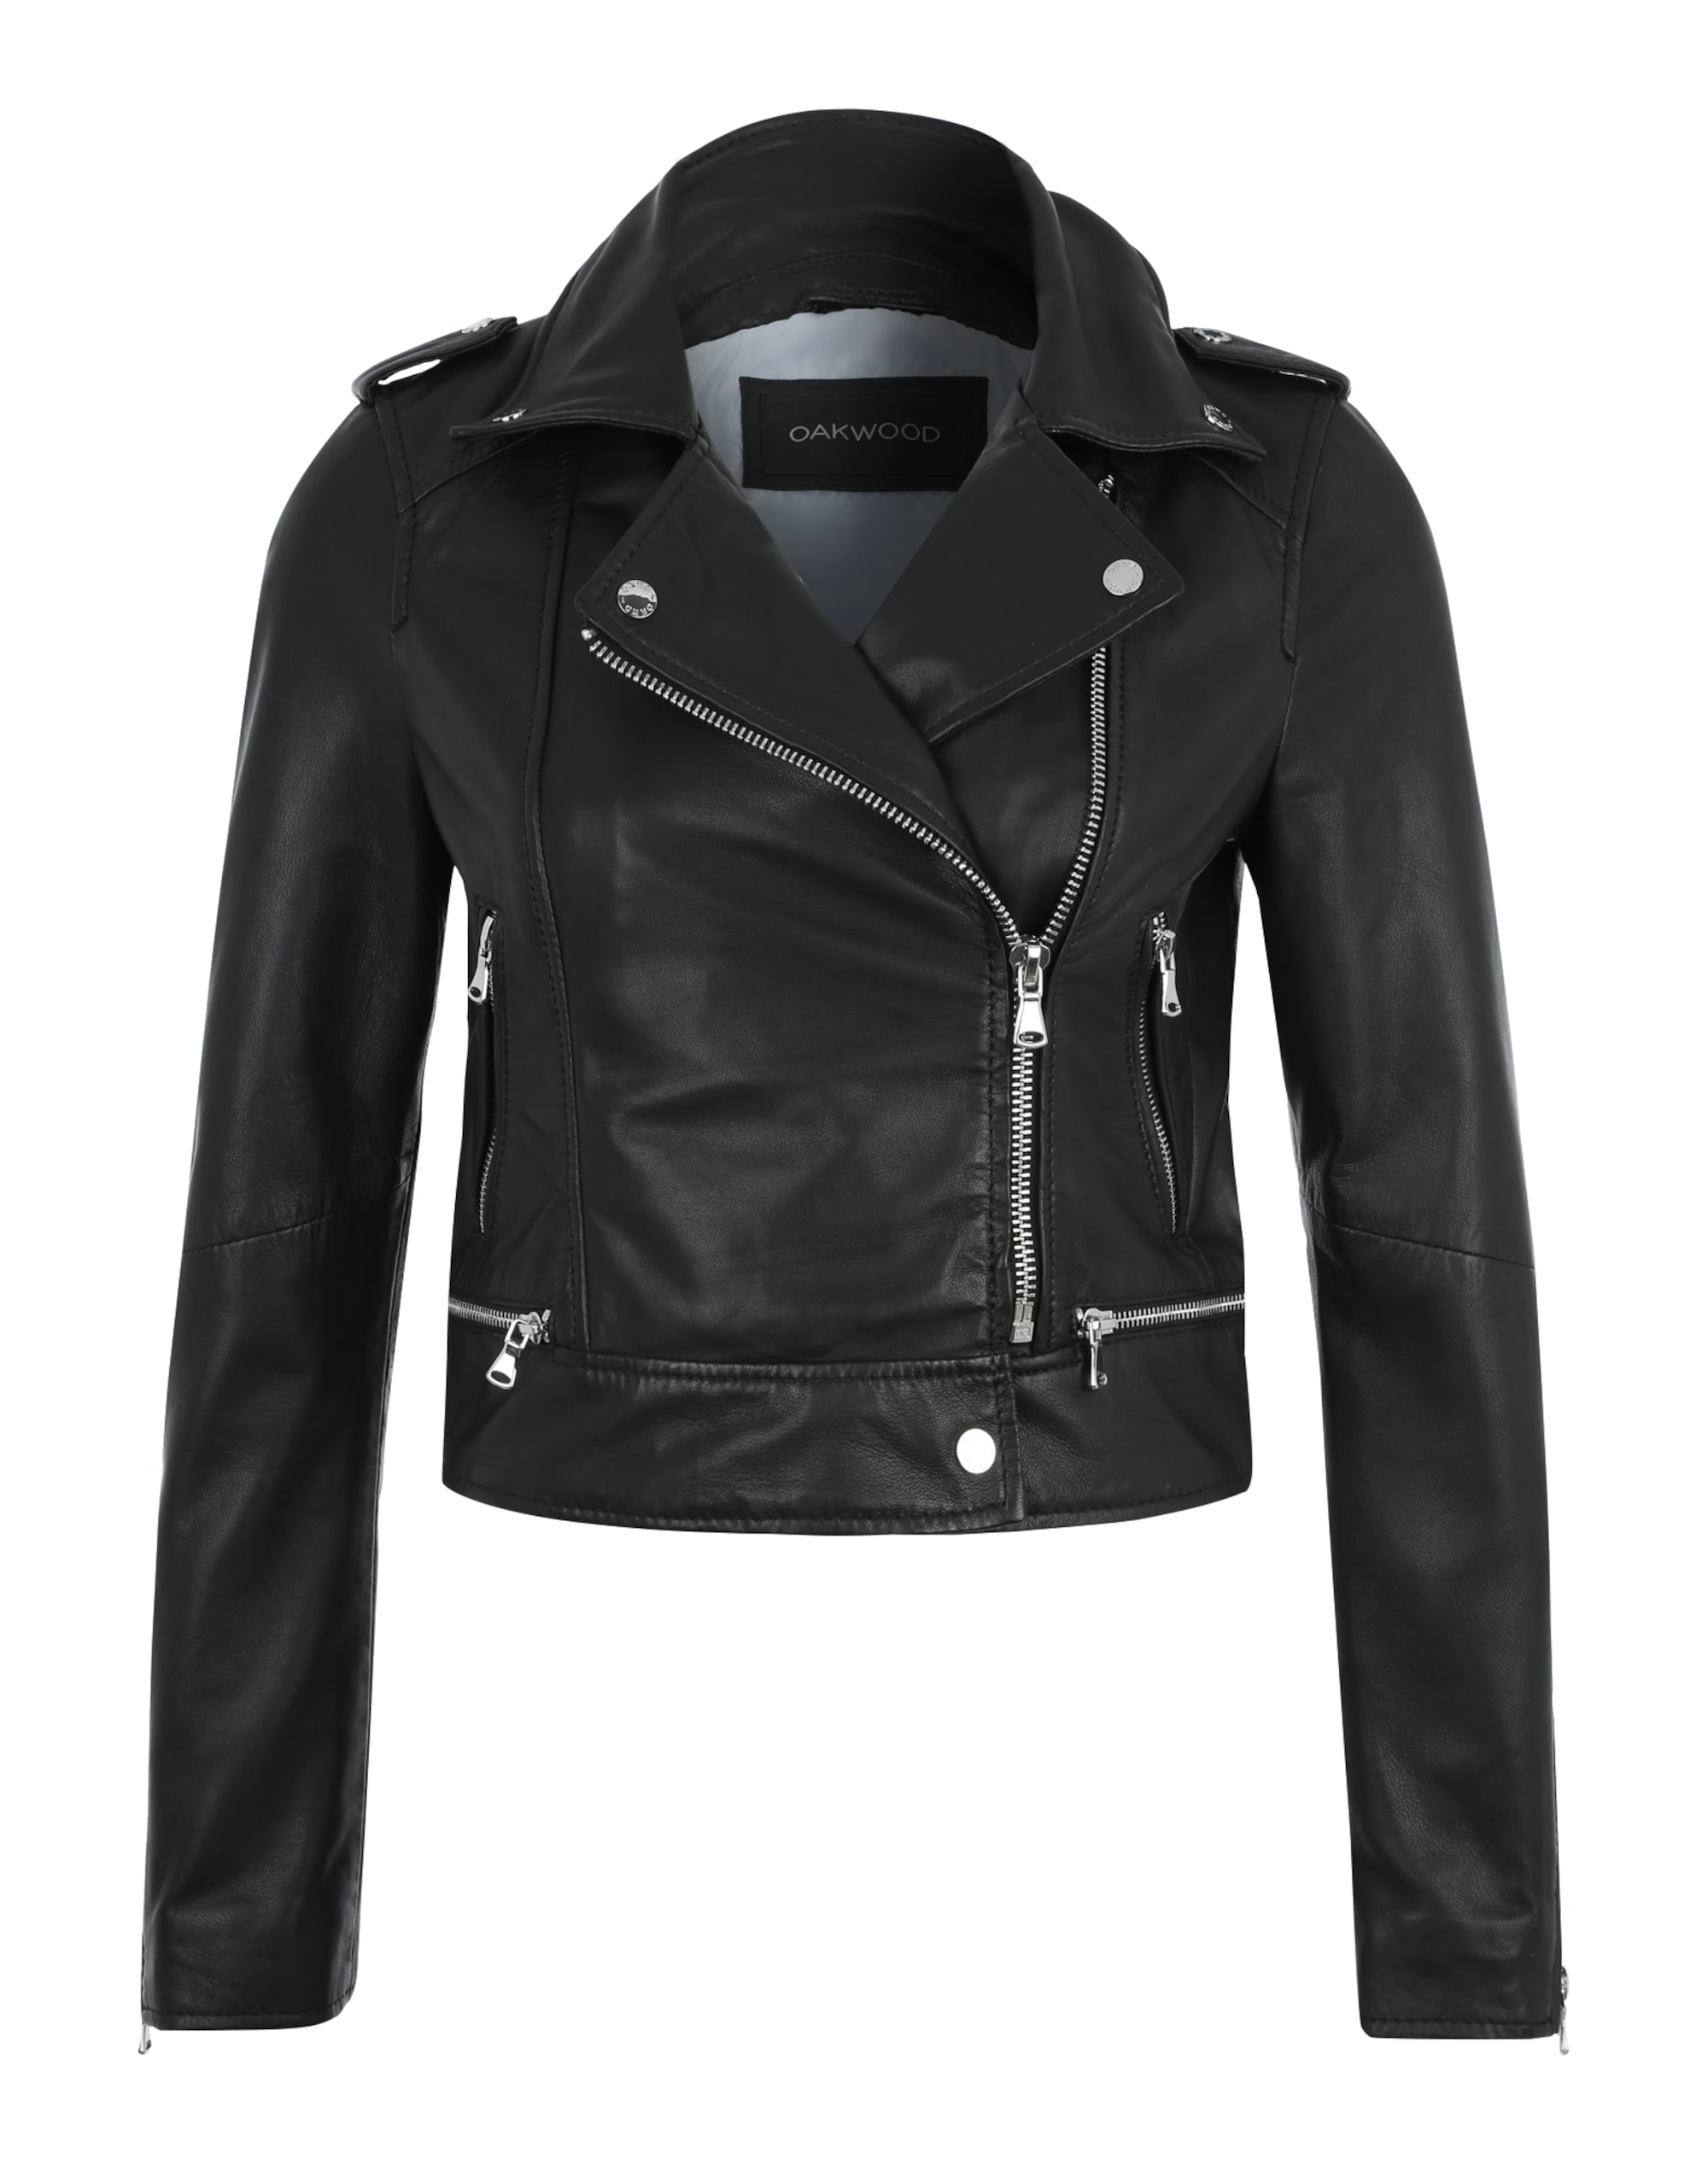 oakwood - Biker-Jacke